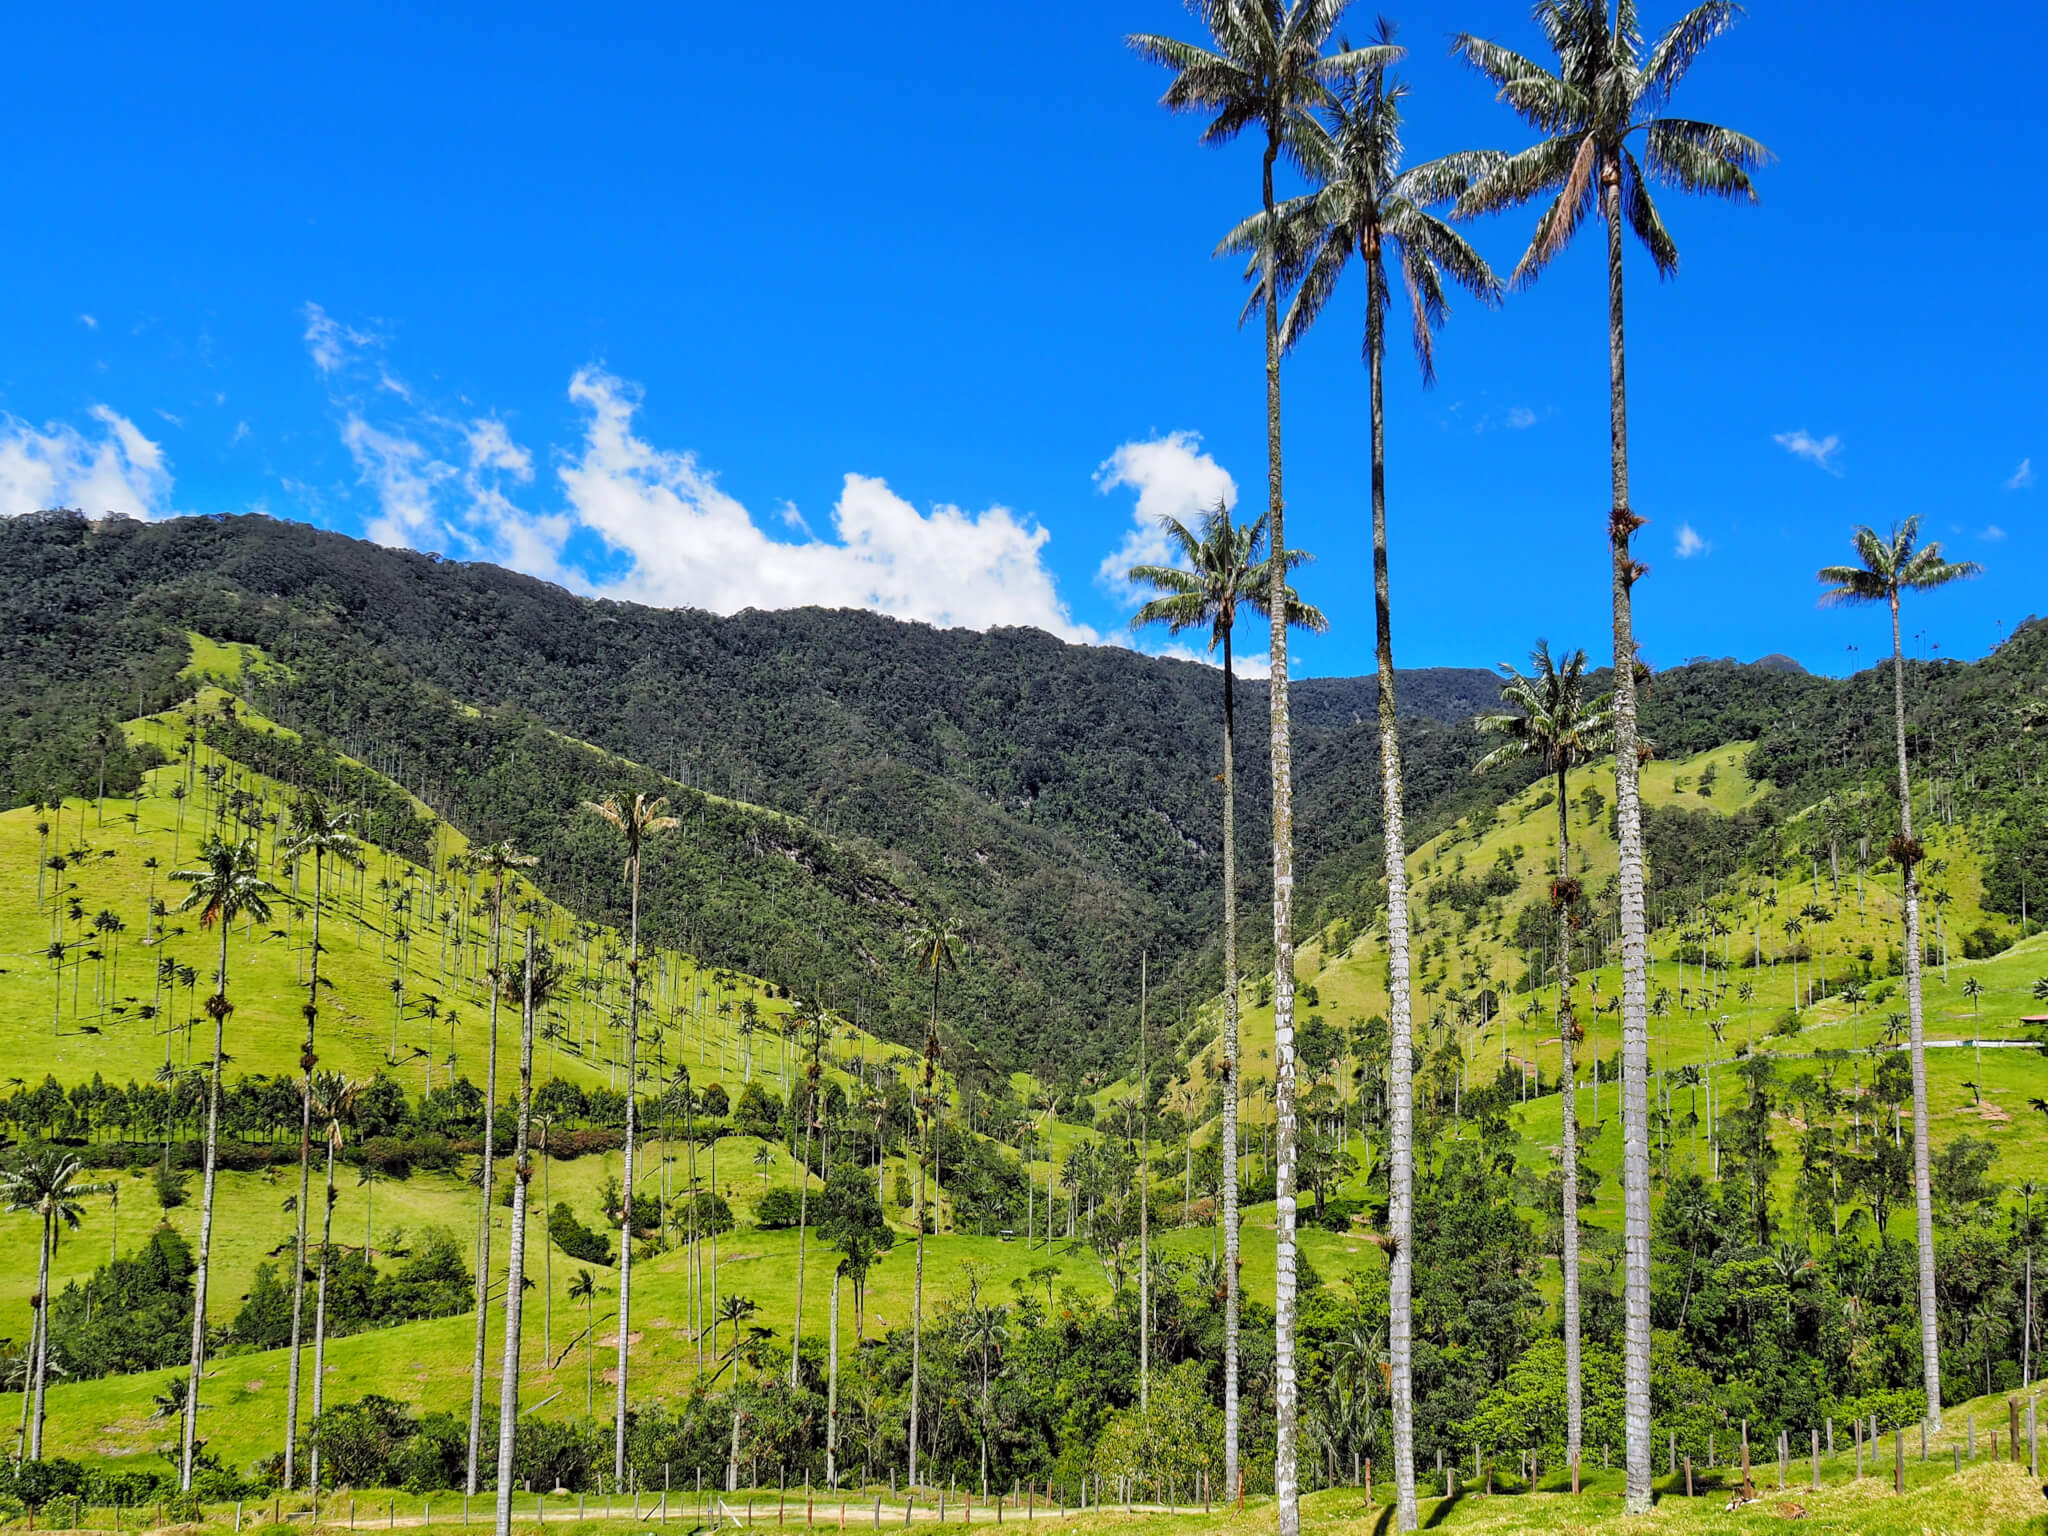 Colombia: Salento and Cocora Valley